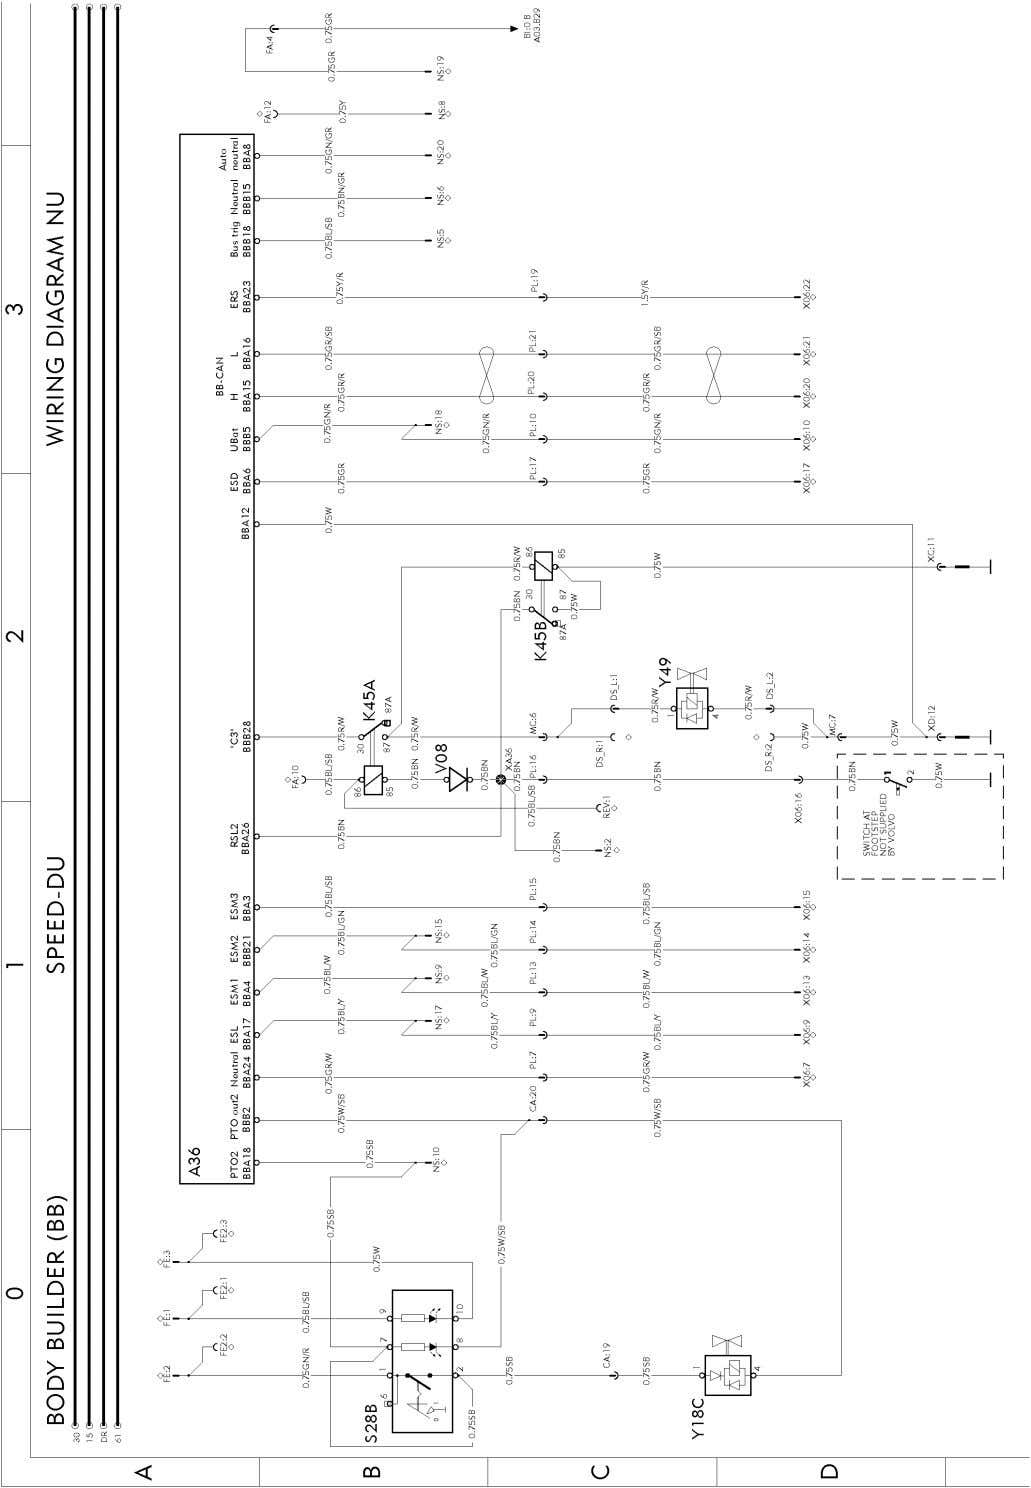 T3020528 Wiring diagram Page 115 (298)